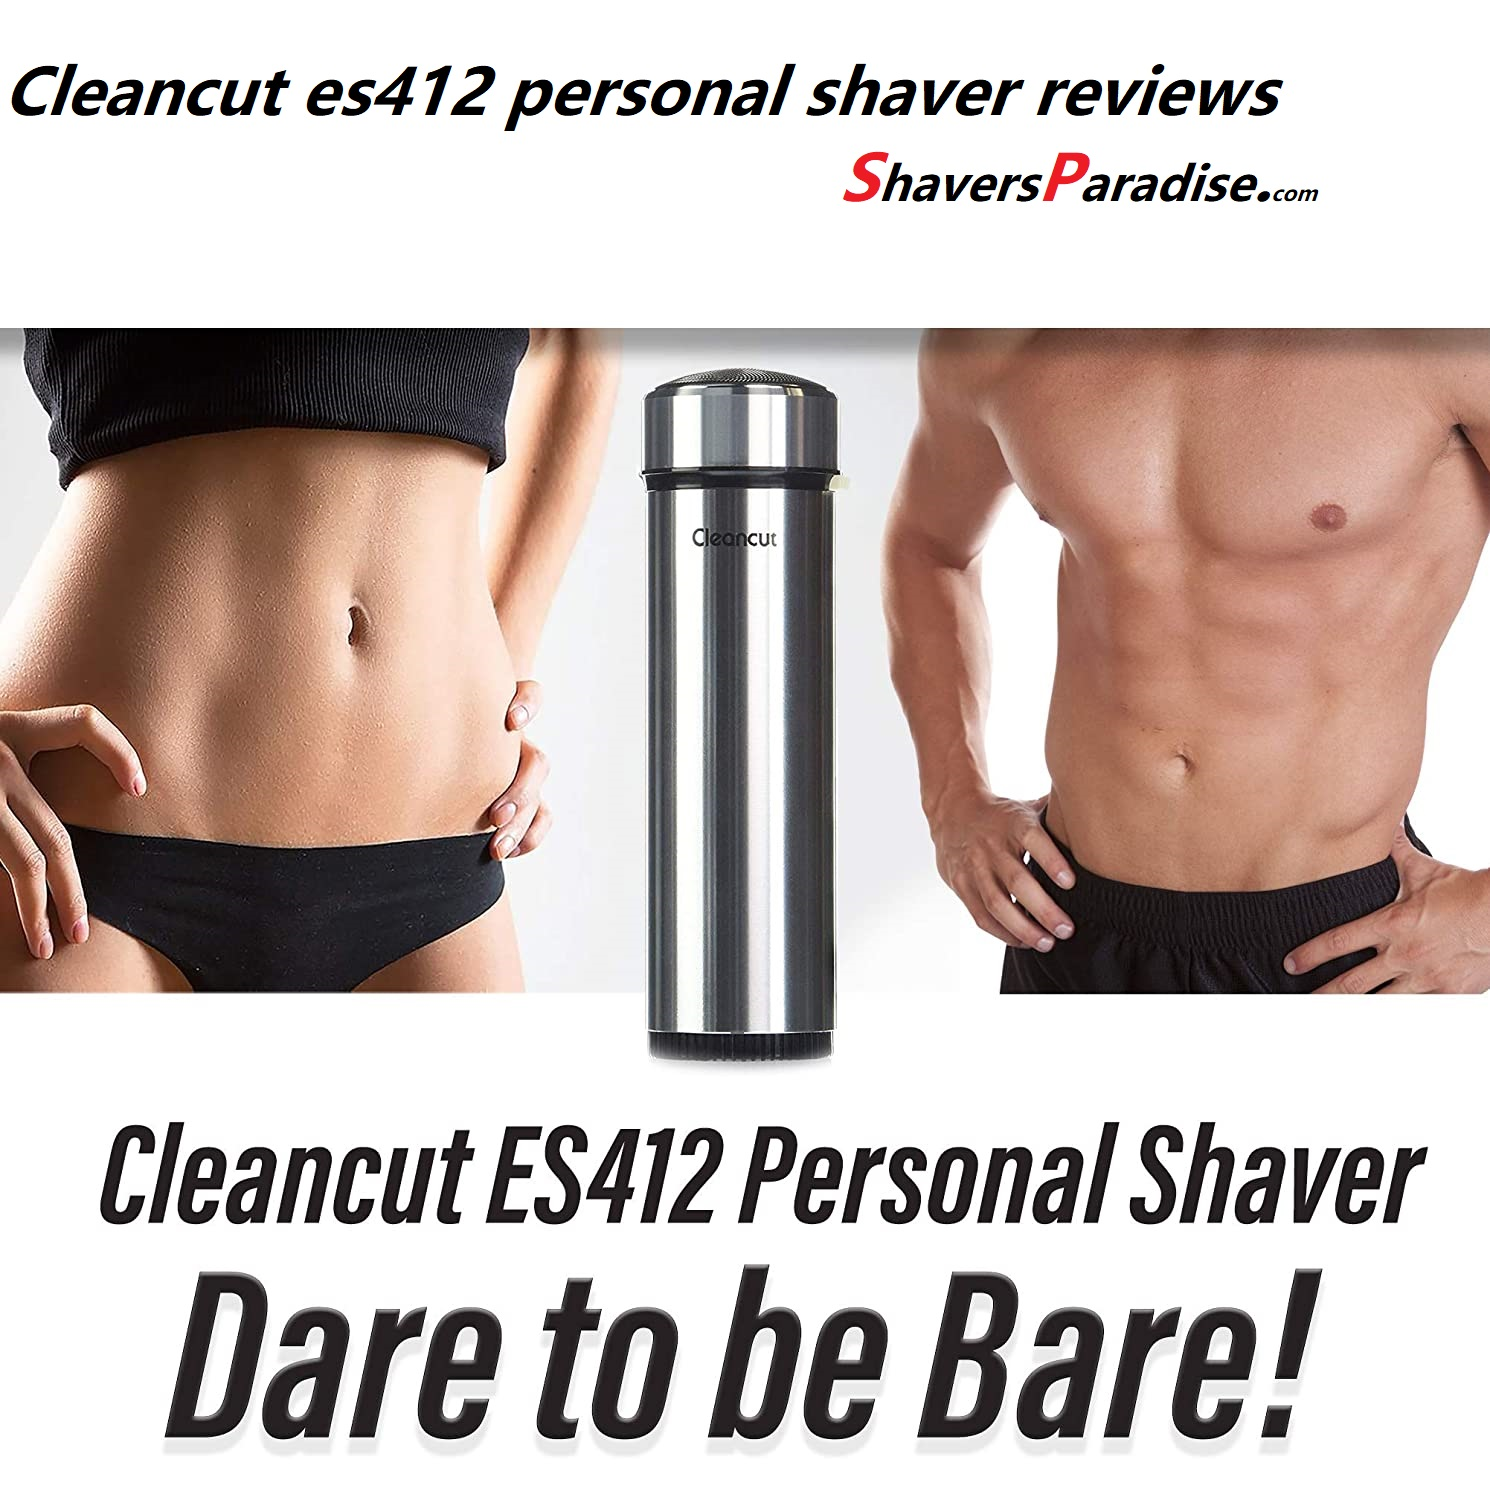 Cleancut es412 personal shaver review